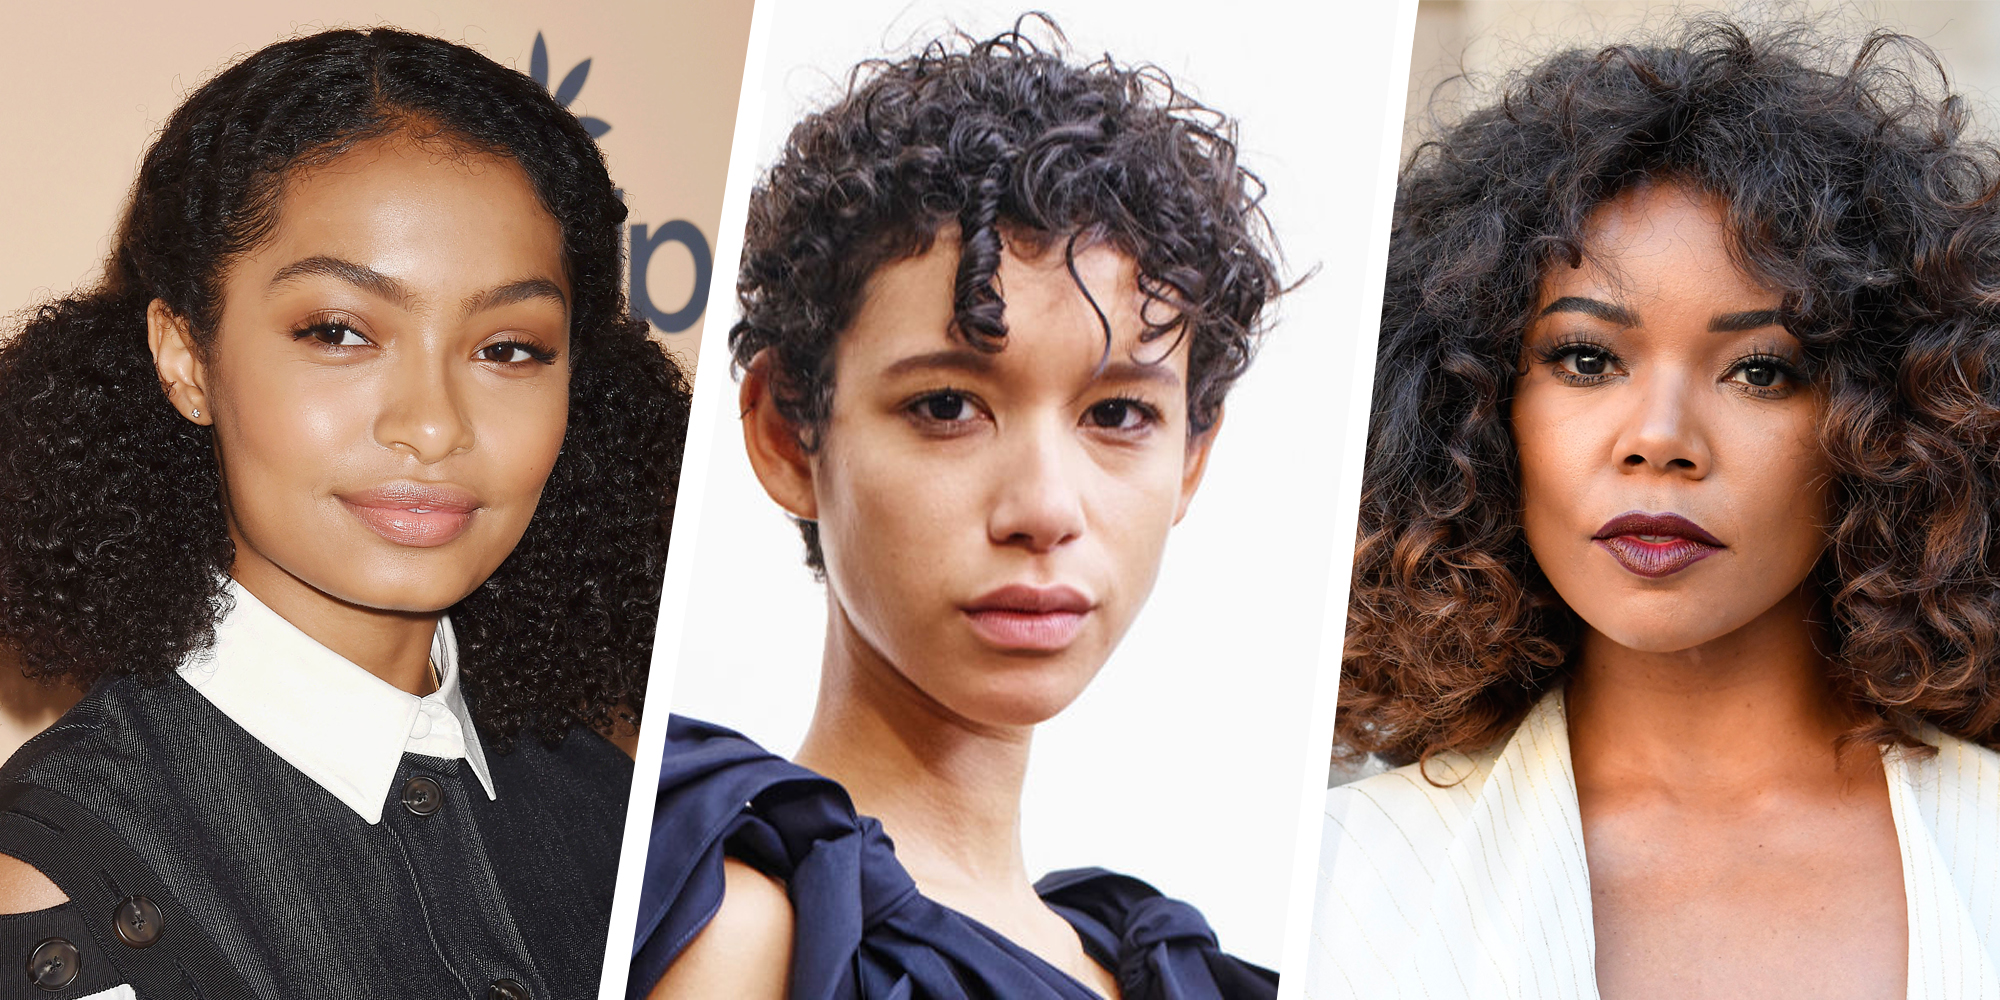 Quick Hairstyles For Short Curly Hair: How To Style Long, Medium, Or